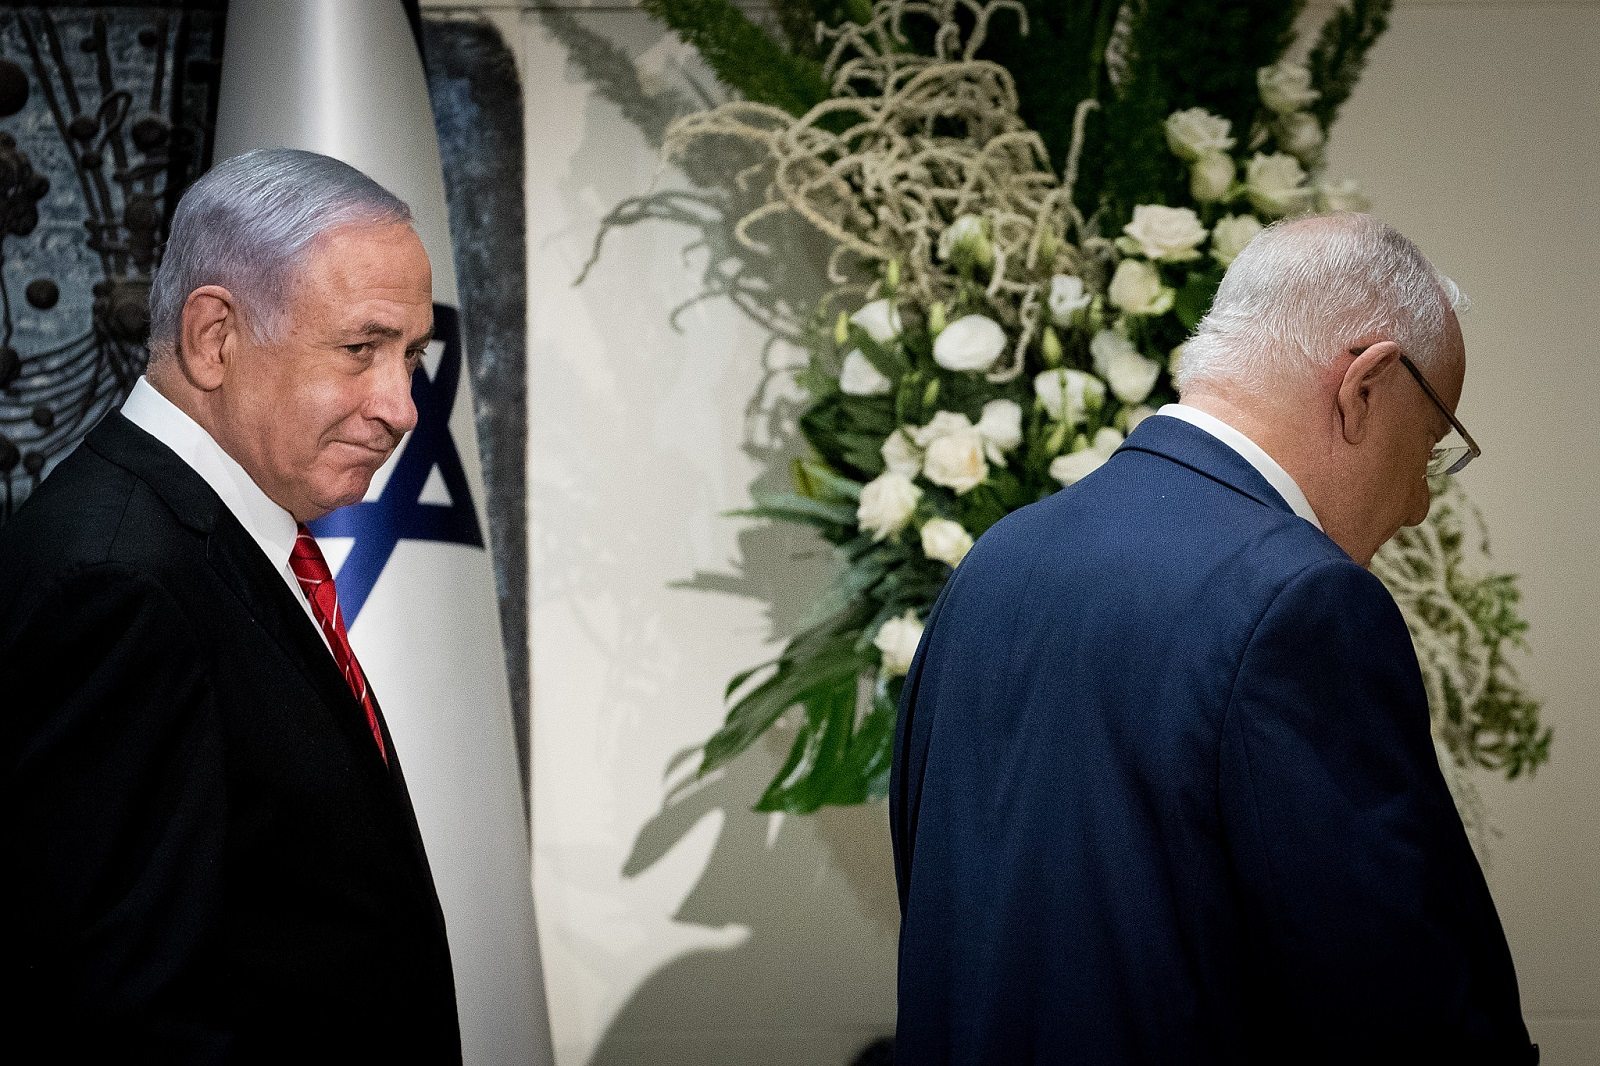 Prime Minister Benjamin Netanyahu and President Reuven Rivlin at the President's Residence in Jerusalem